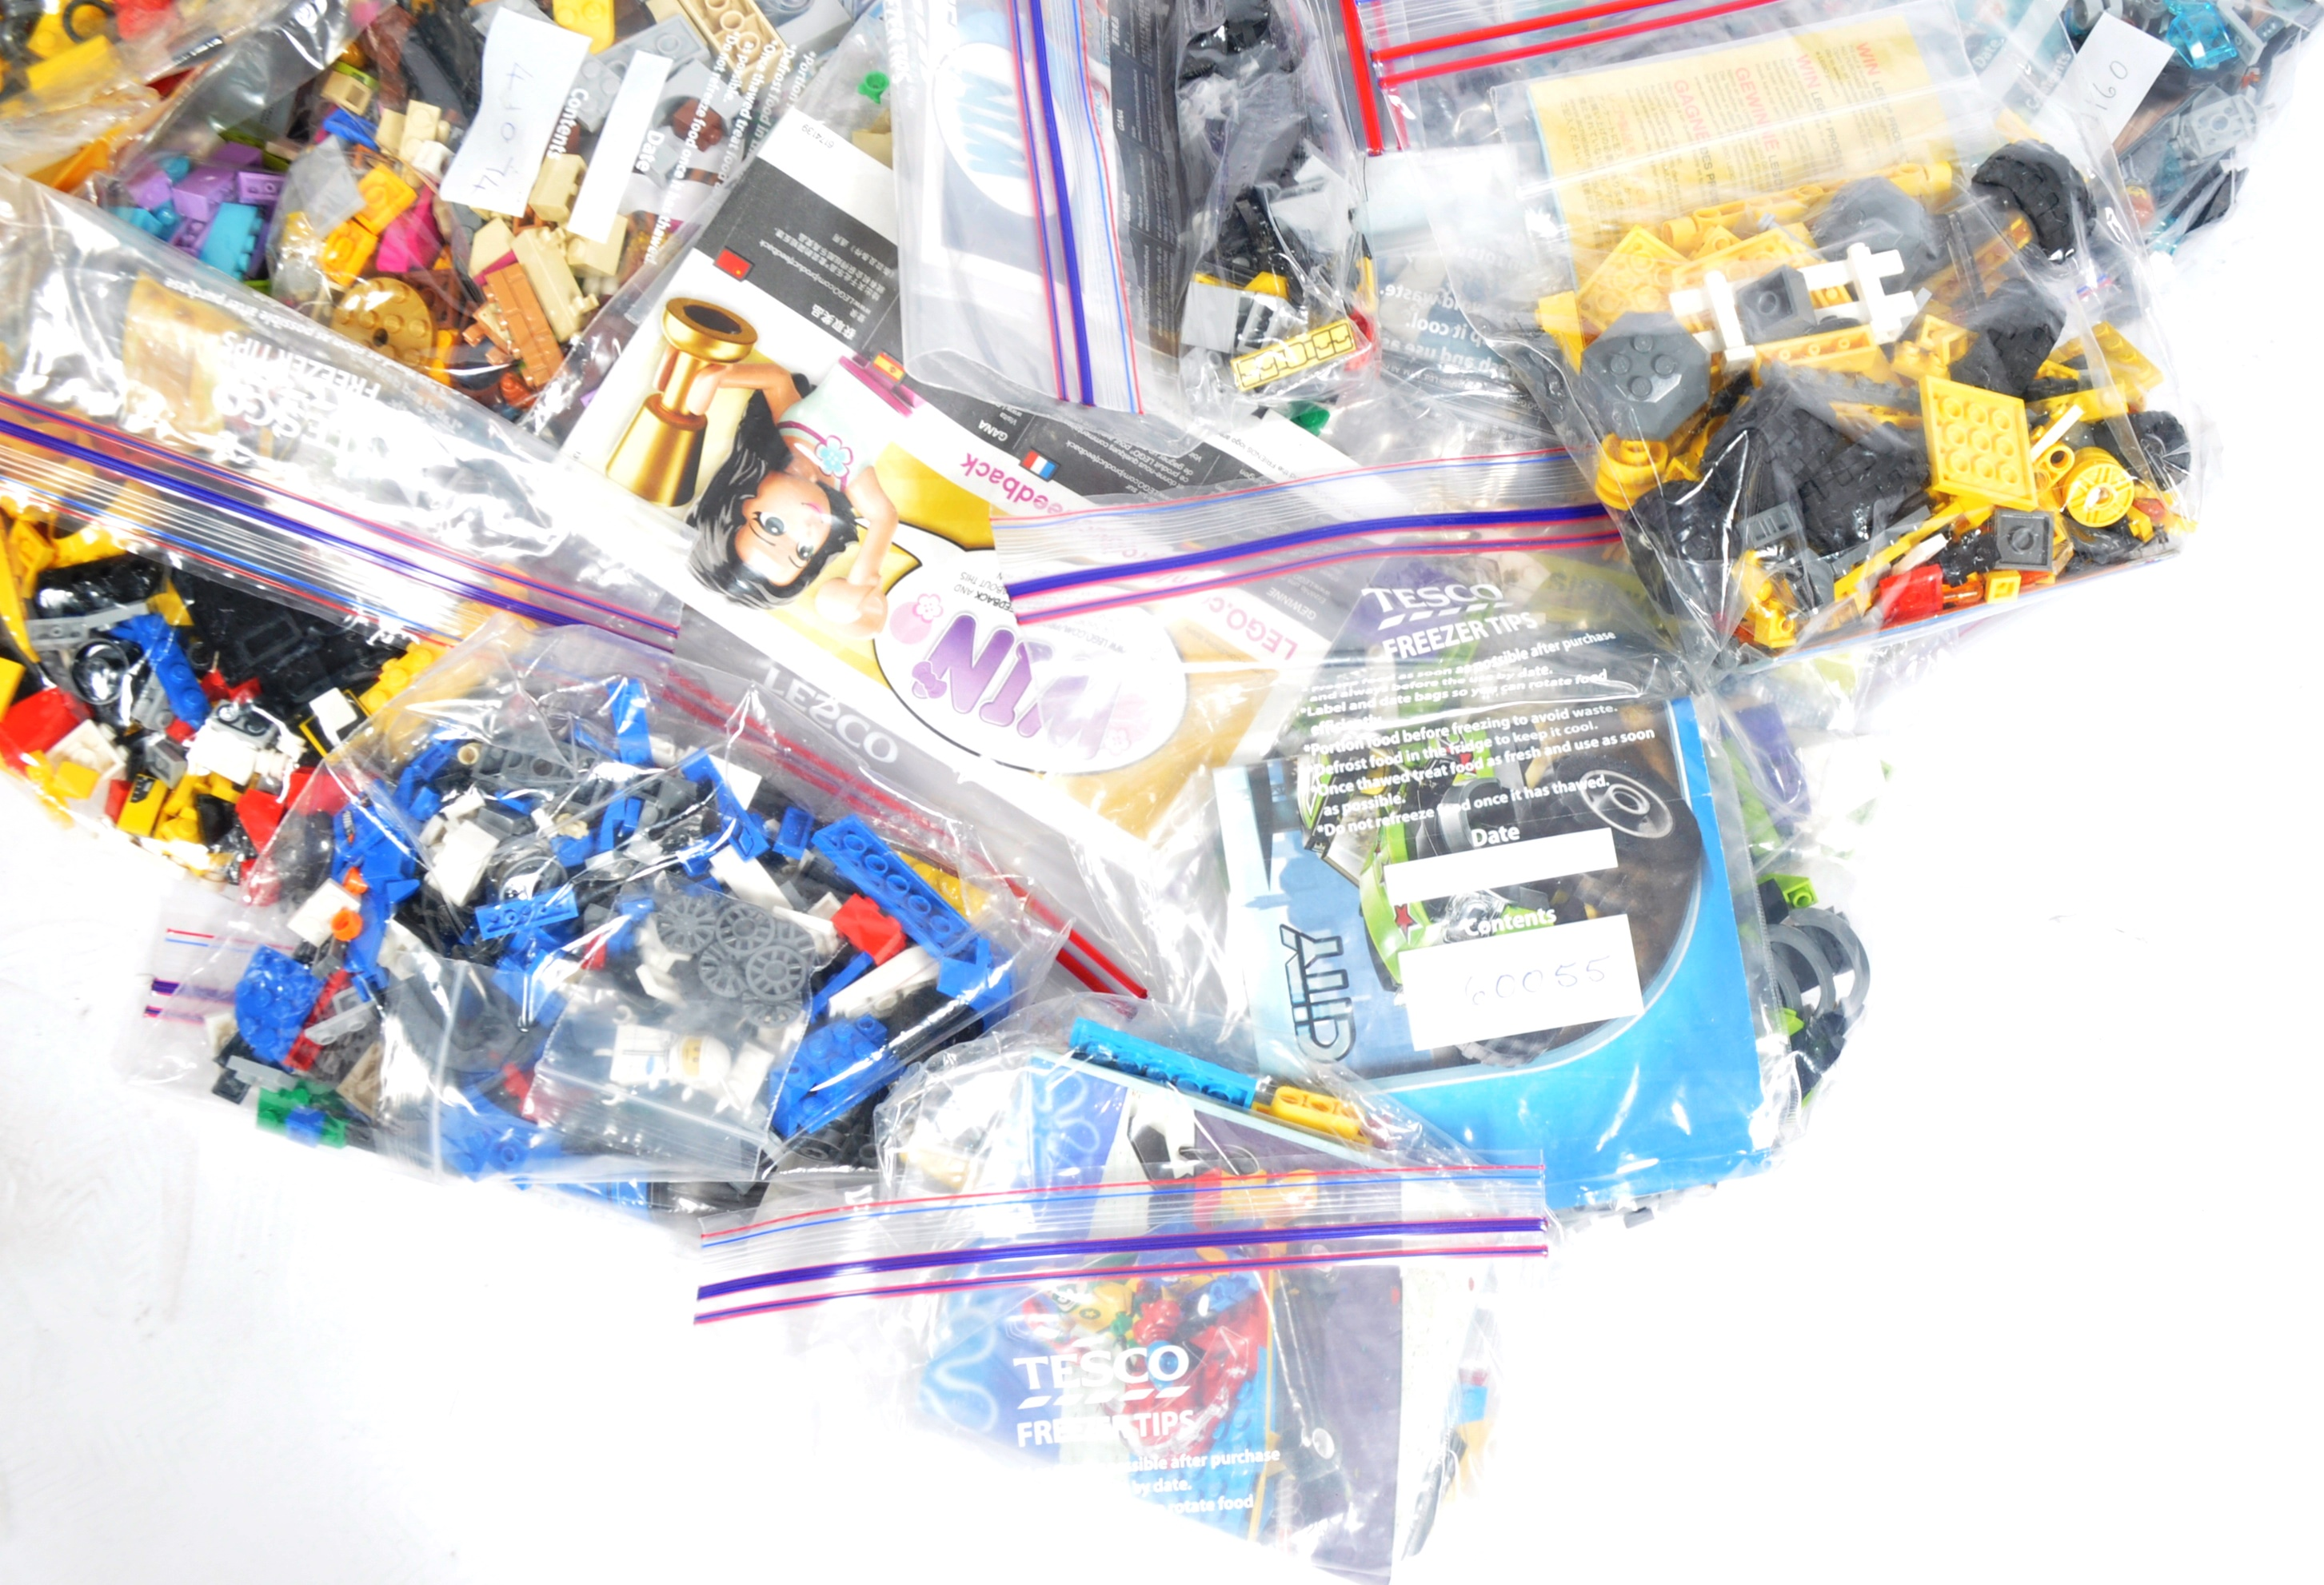 LARGE COLLECTION OF ASSORTED UNBOXED LEGO SETS - Image 3 of 5